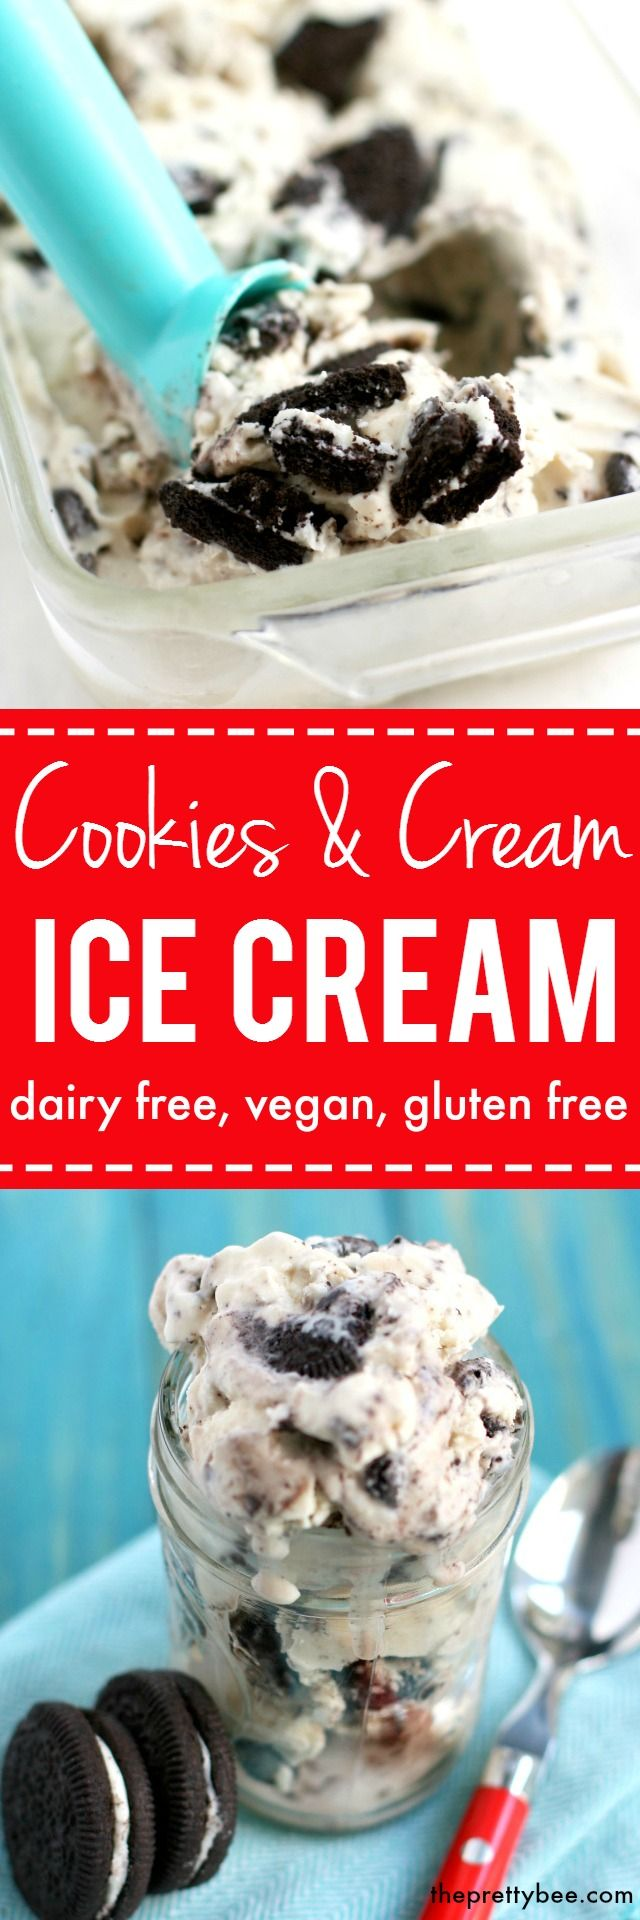 Deliciously sweet and decadent dairy free cookies and cream ice cream is sure to become a favorite recipe! Easy to make at home!